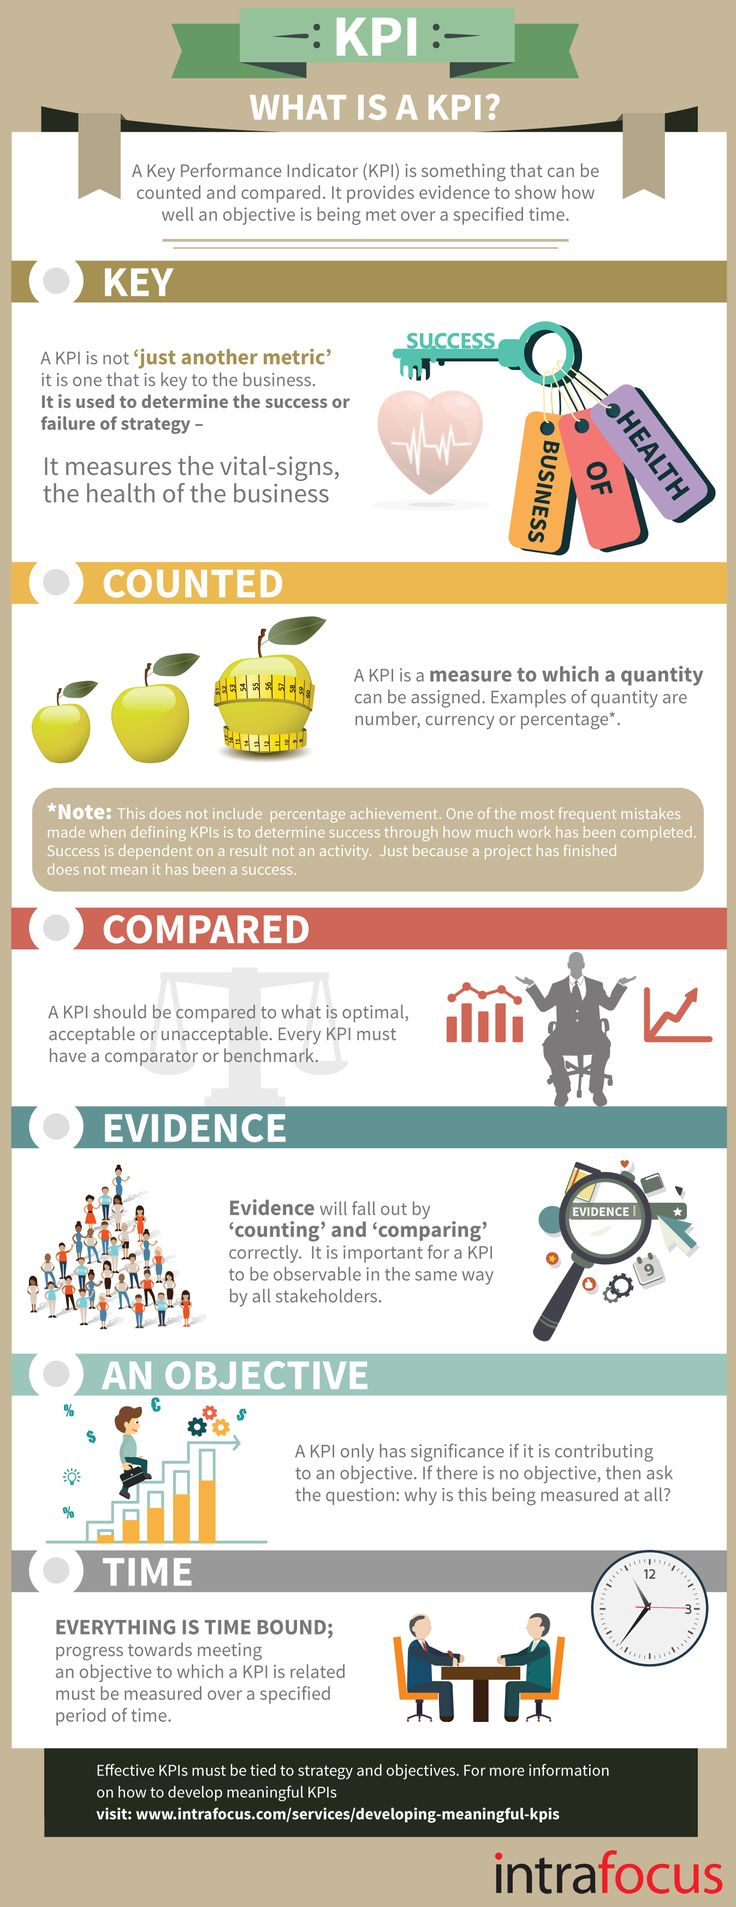 Seguramente habrás oído de los KPI´s. ¿Pero realmente sabes que son? Encuentra las respuestas en esta infografía. What is a KPI? - KPI stands for Key Performance Indicator. Marketing Strategy